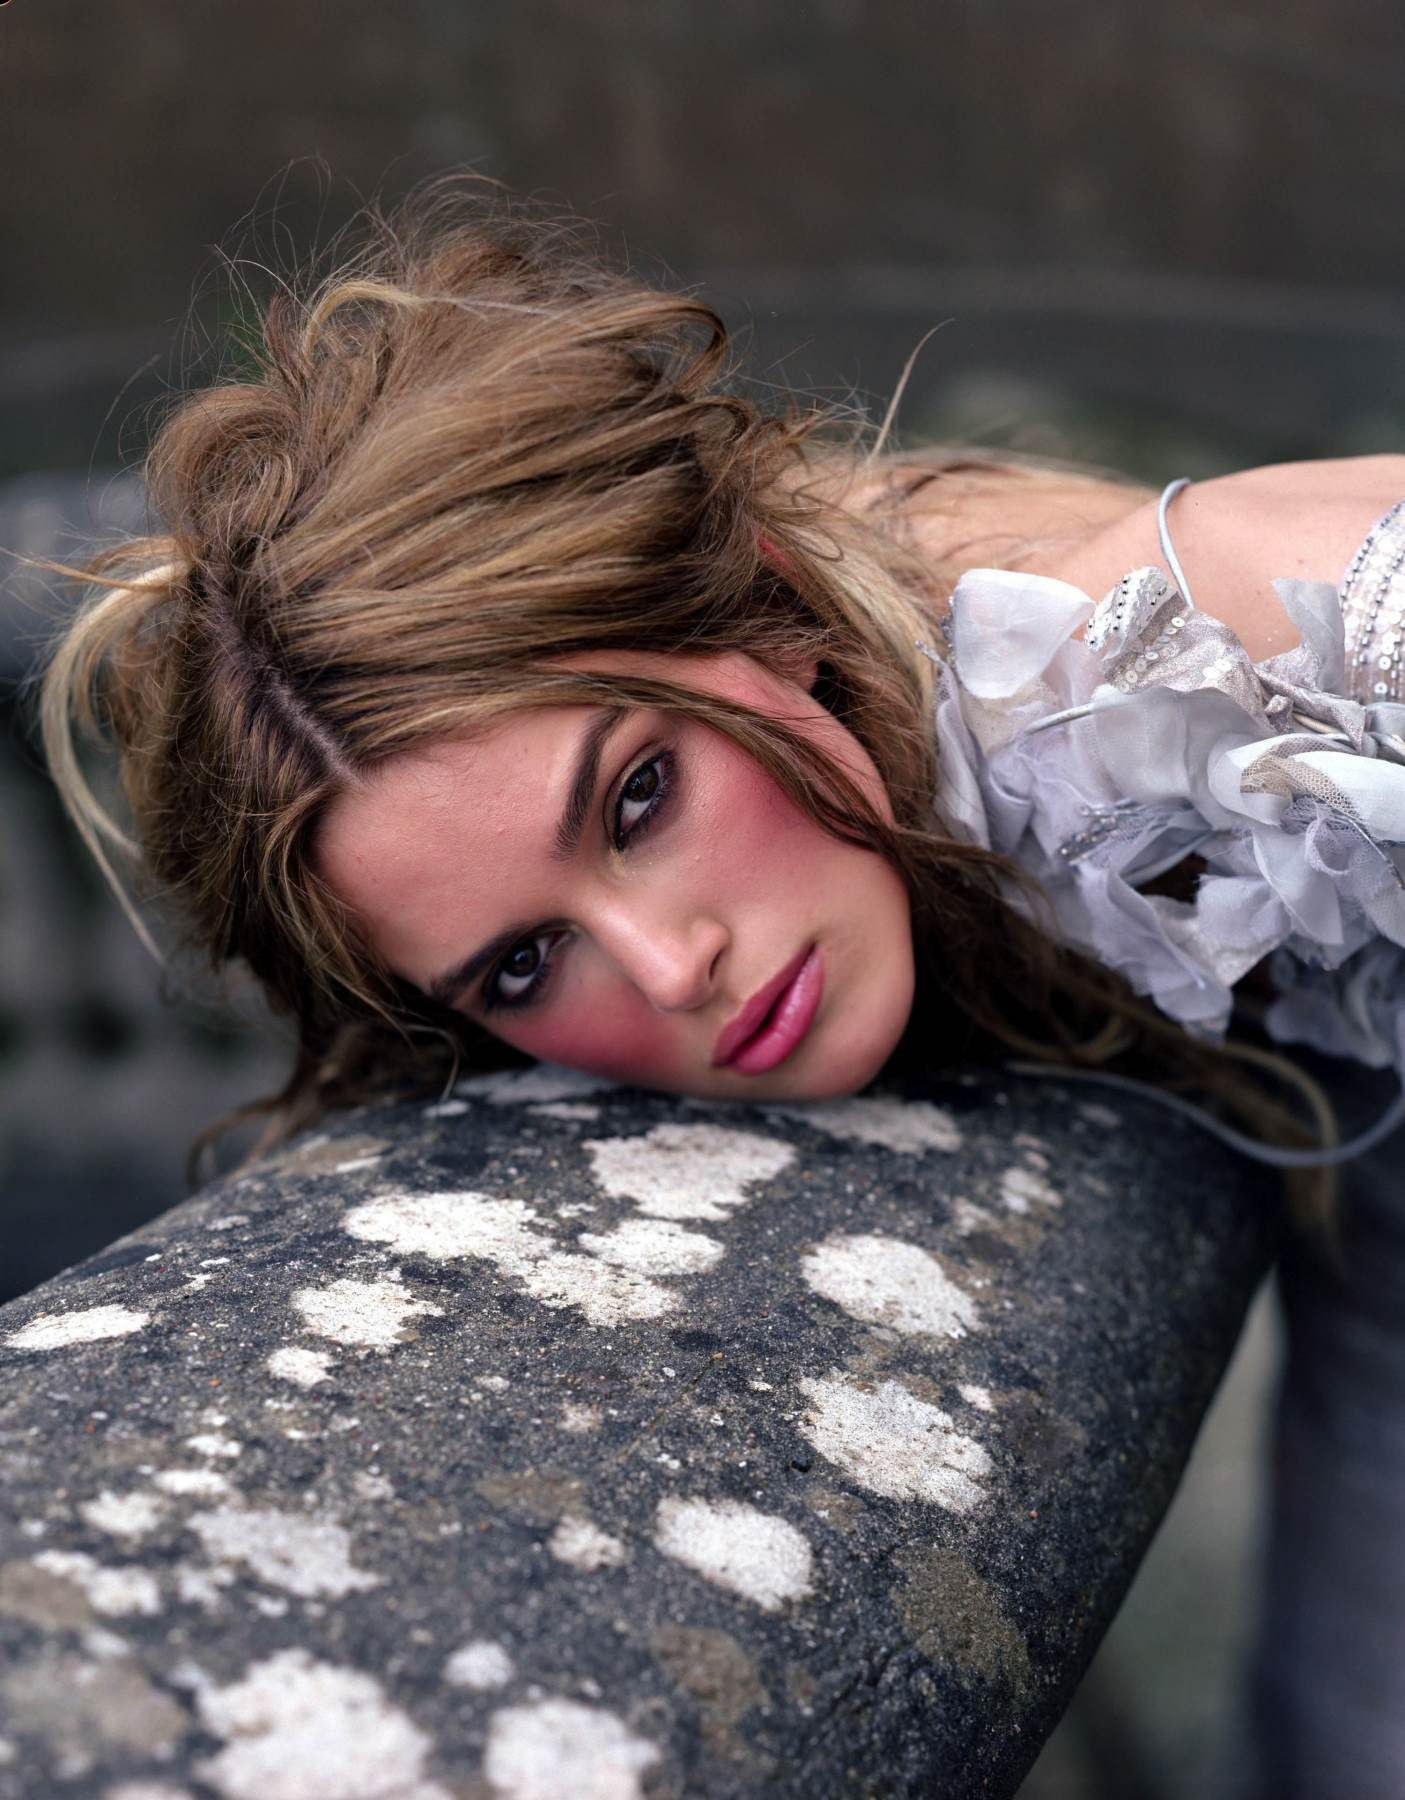 Pin by Maria Celestine on Makeup in 2020 Keira knightley